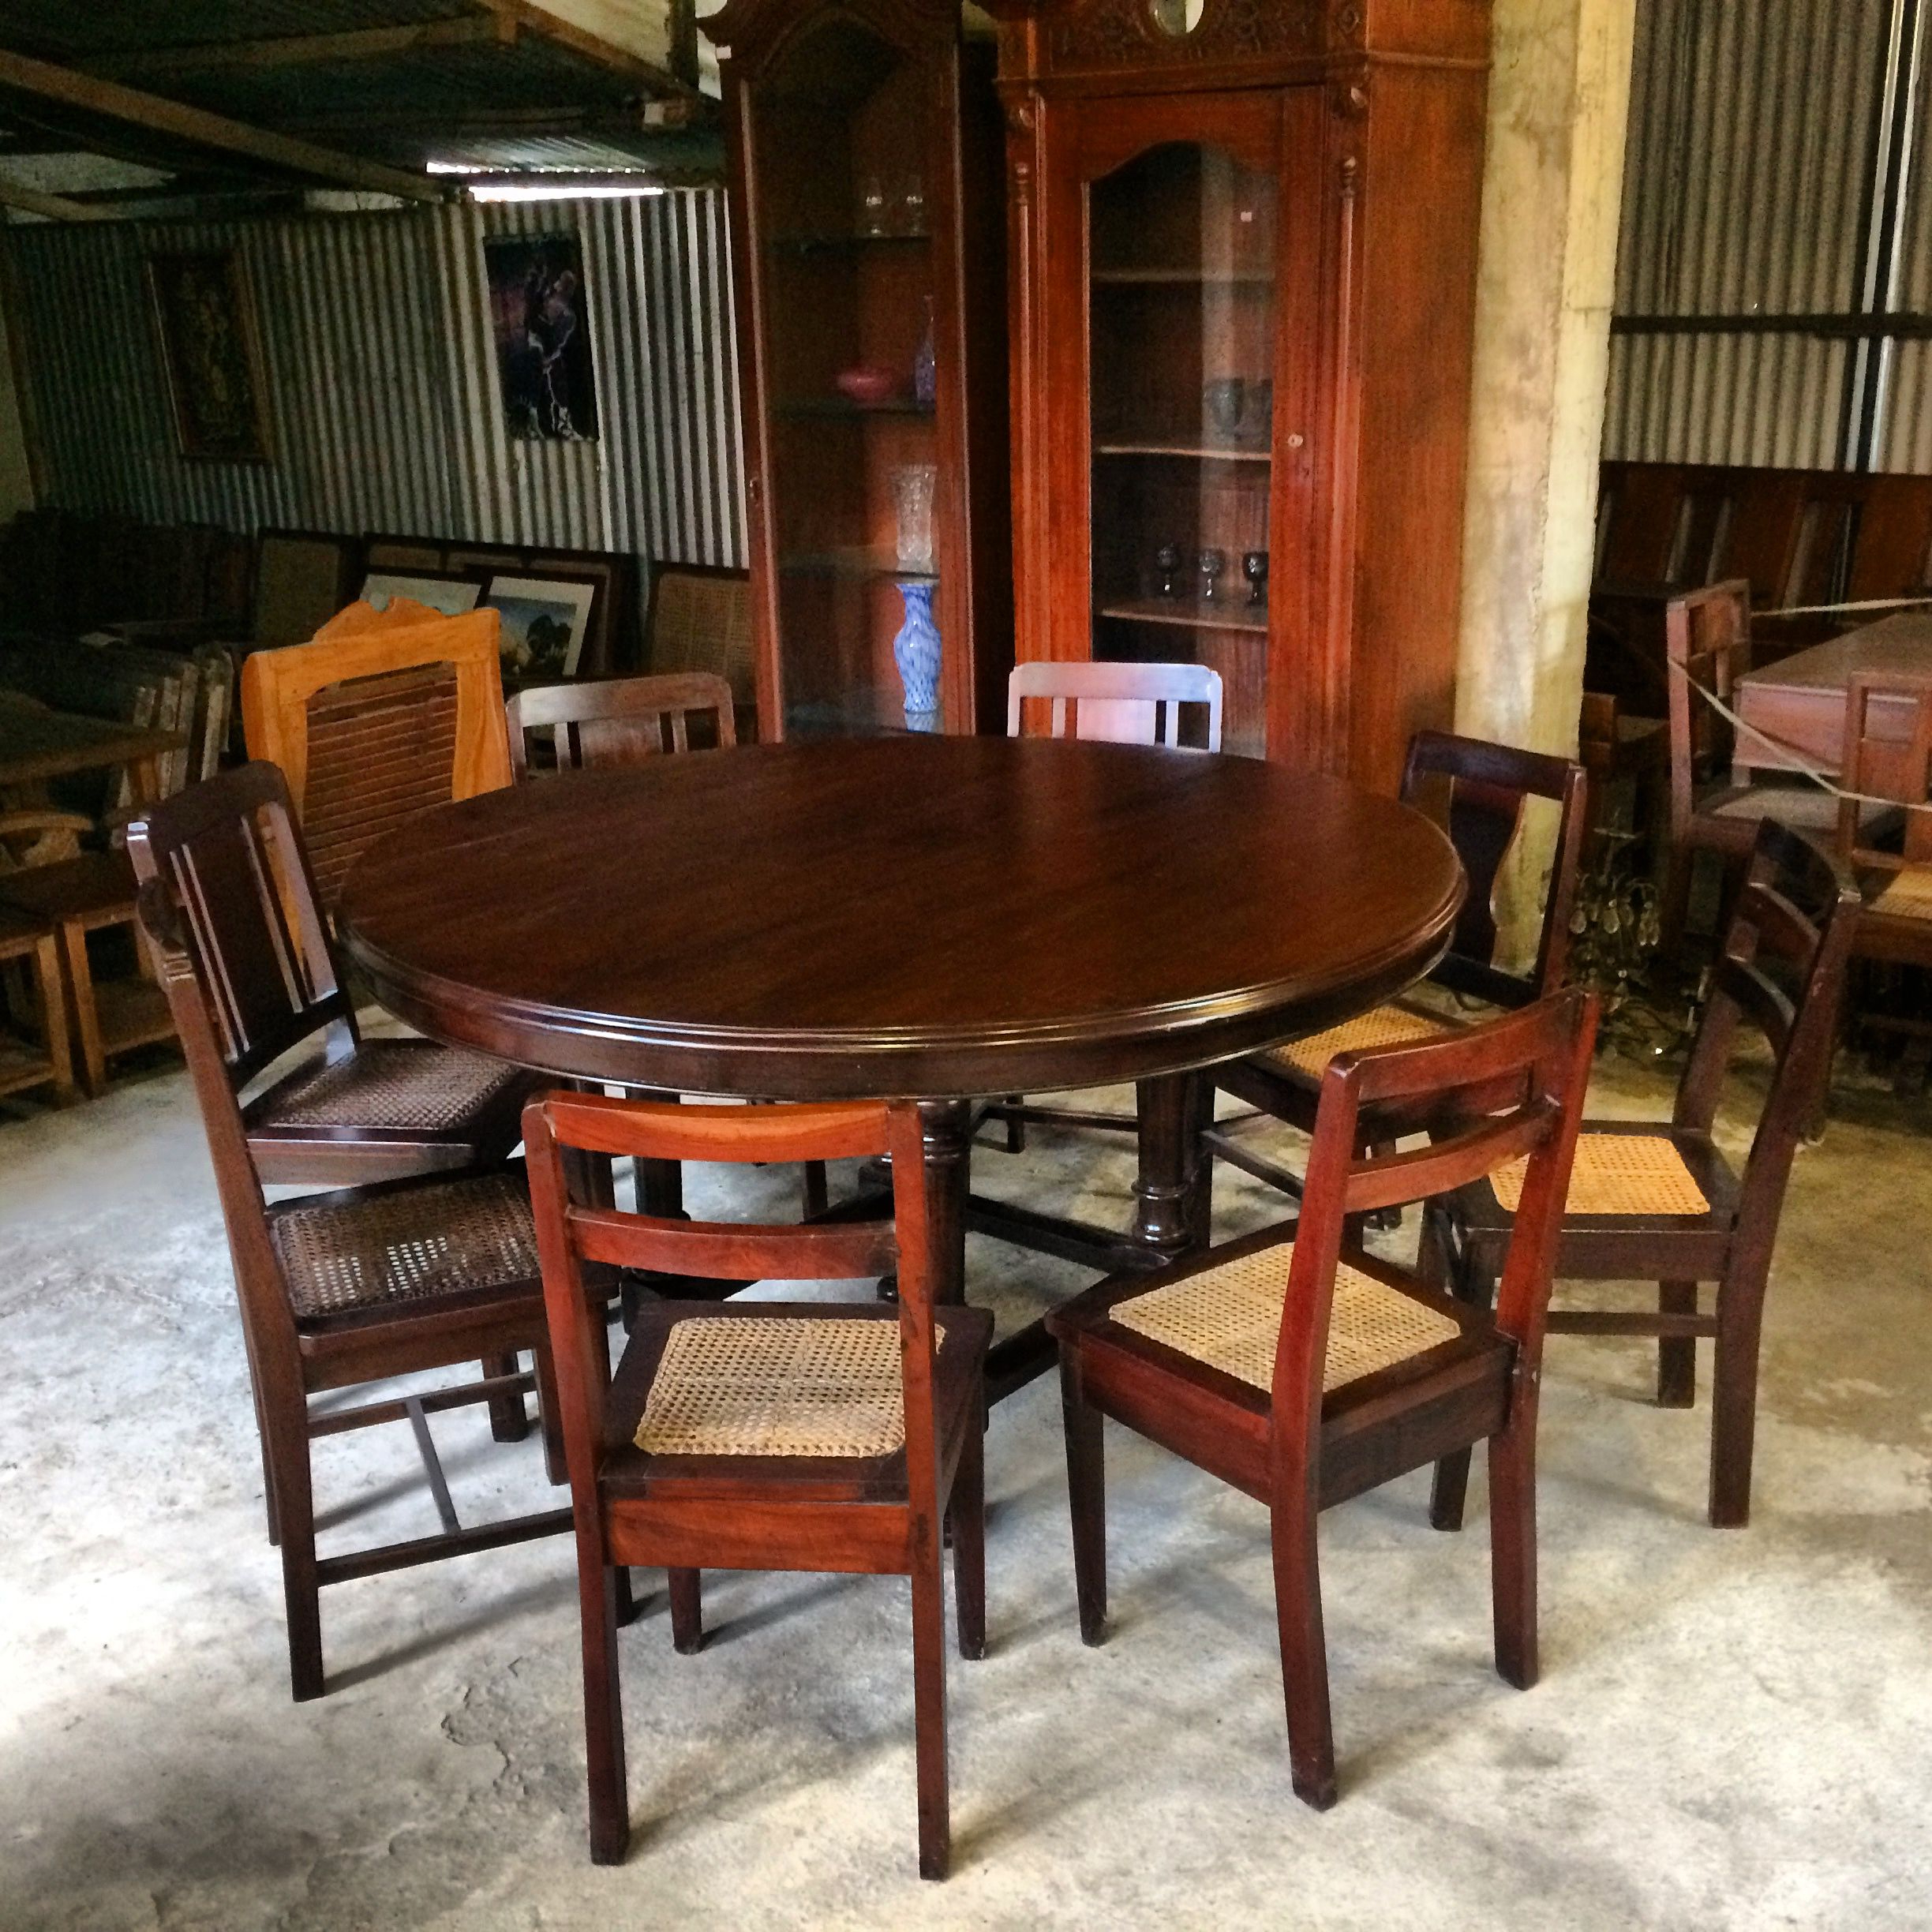 2018 Vintage Cream Frame And Espresso Bamboo Dining Tables Pertaining To My 6 7 Seater Vintage — Narra Dining Table — (View 17 of 30)